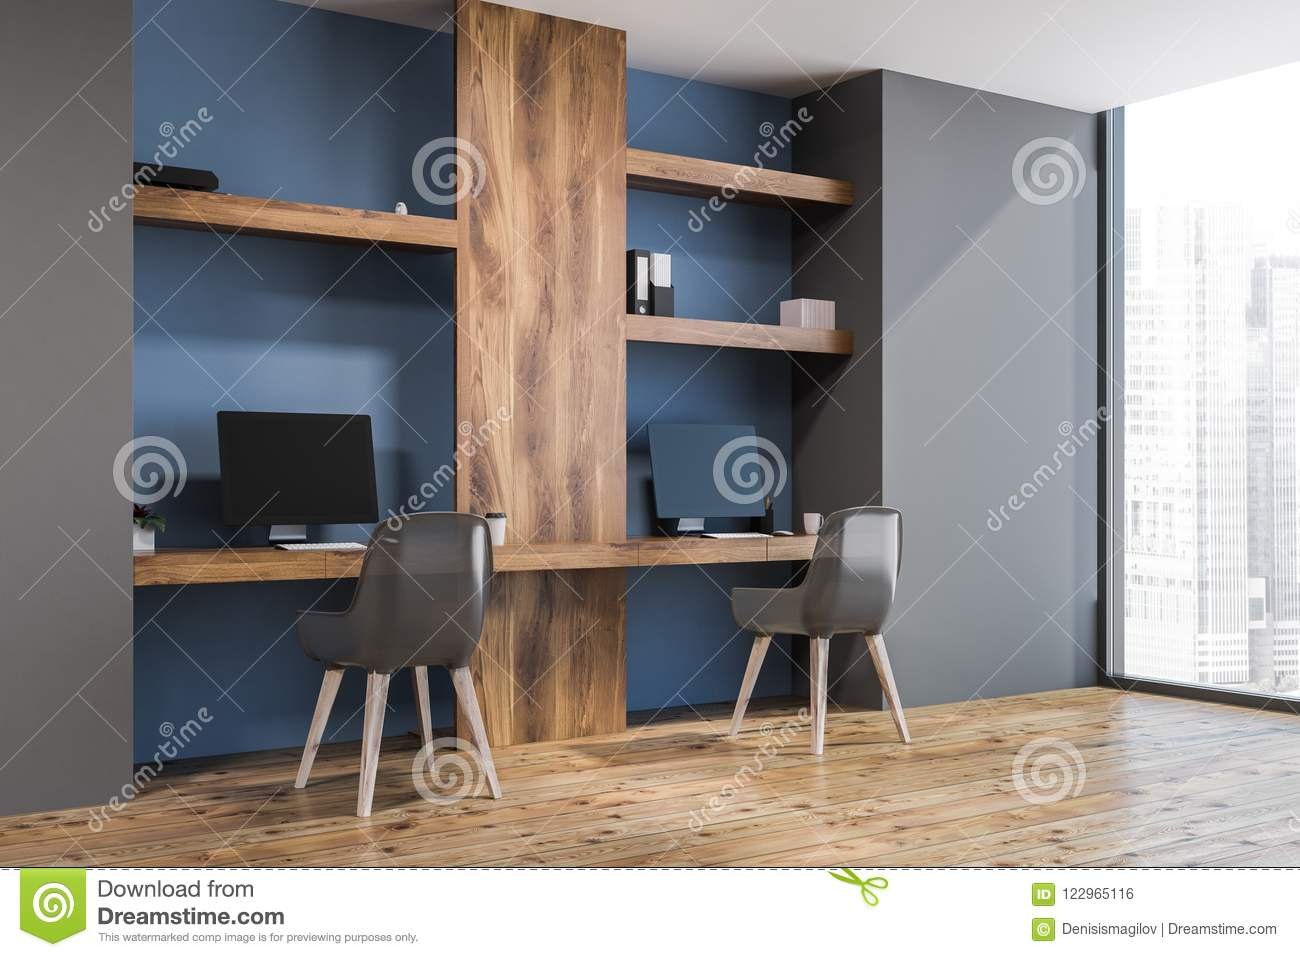 Blue home office wall Light Blue Blue Wall Home Office For Freelance Work Side View Dreamstimecom Blue Wall Home Office For Freelance Work Side View Stock